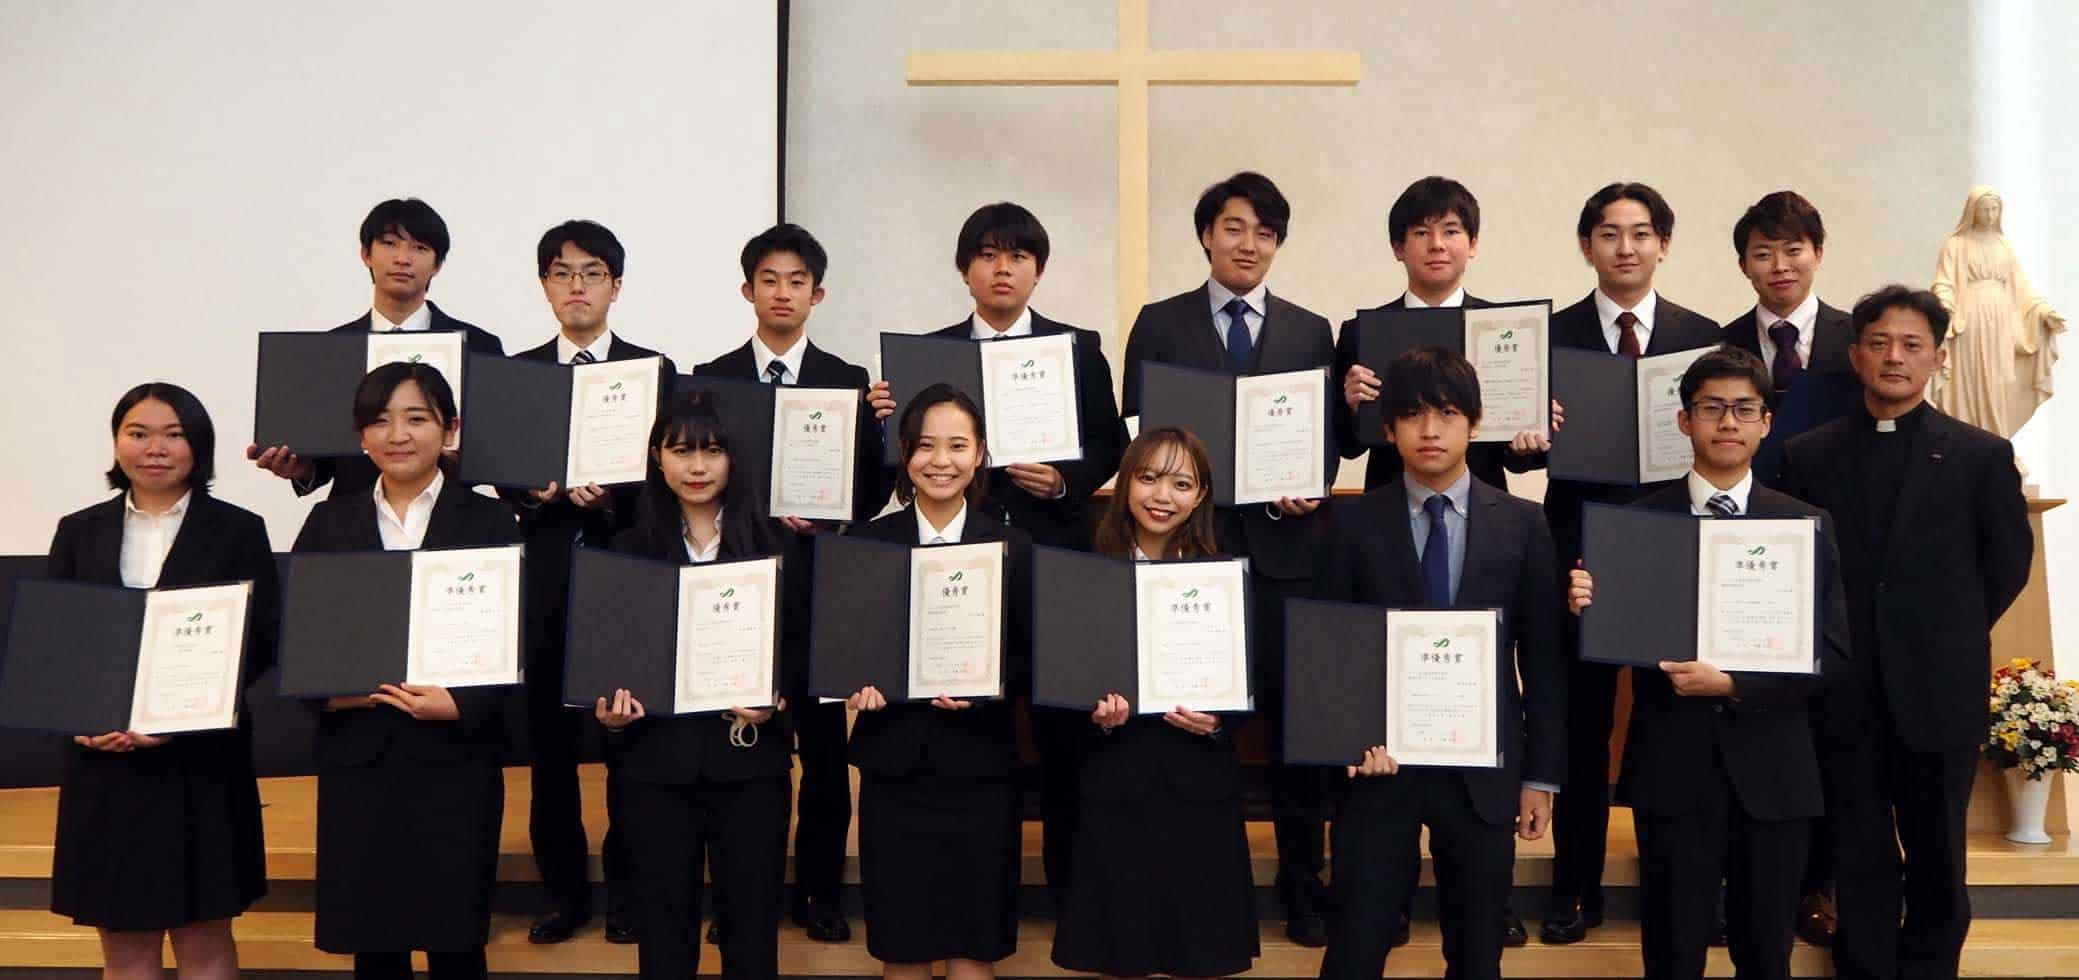 Group up of 15 students from Salesian Polytechnic Tokyo Salesian College of Technology who received 15 honor awards at the 12th University Consortium Hachioji Student Presentation, Japan